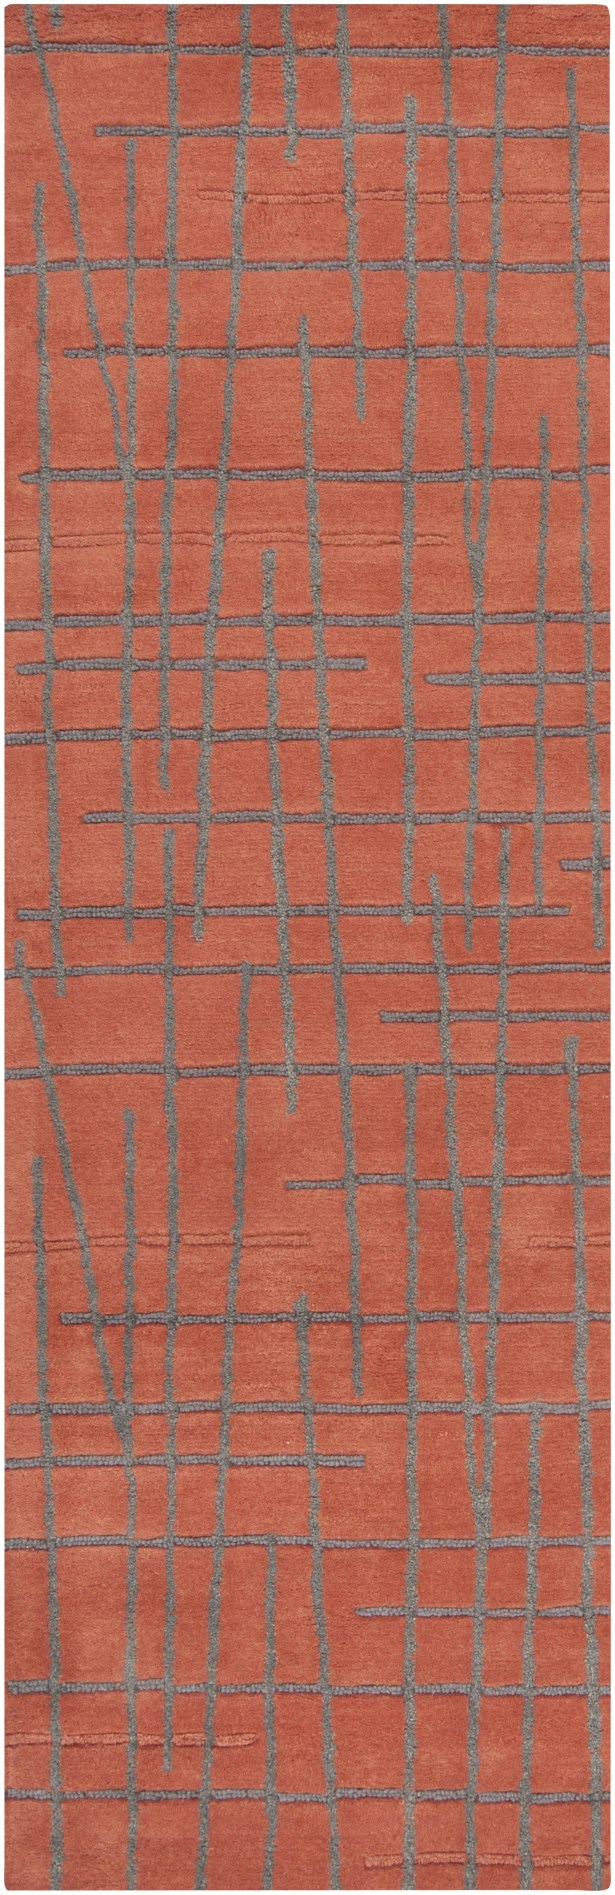 Major Red Clay Area Rug Rug Size: Runner 2'6